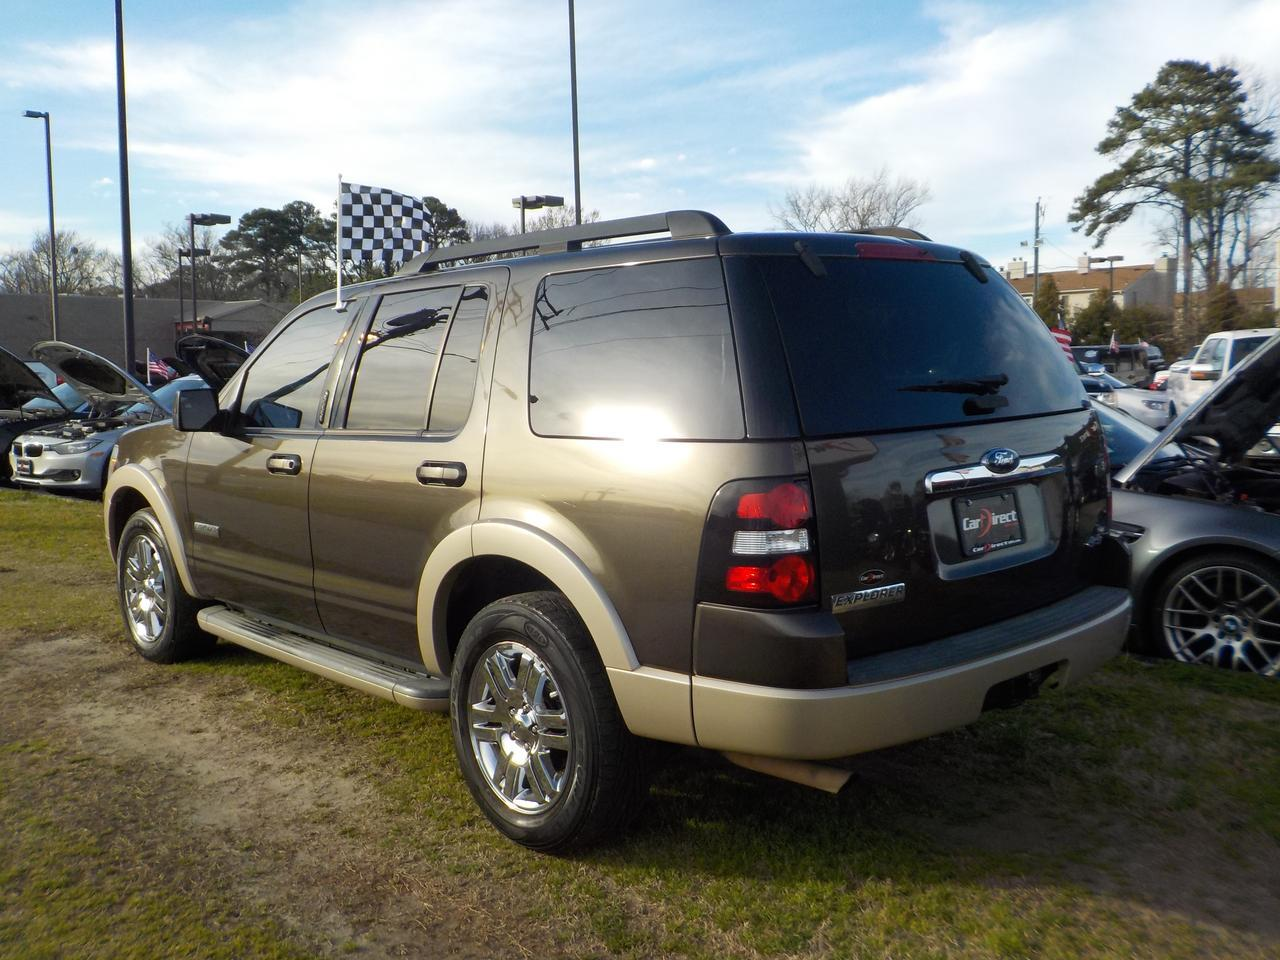 2008 FORD EXPLORER EDDIE BAUER EDITION 4X4,SUNROOF, ROOF RACKS, TOW, POWER 3RD ROW SEATING, BLUETOOTH! Virginia Beach VA